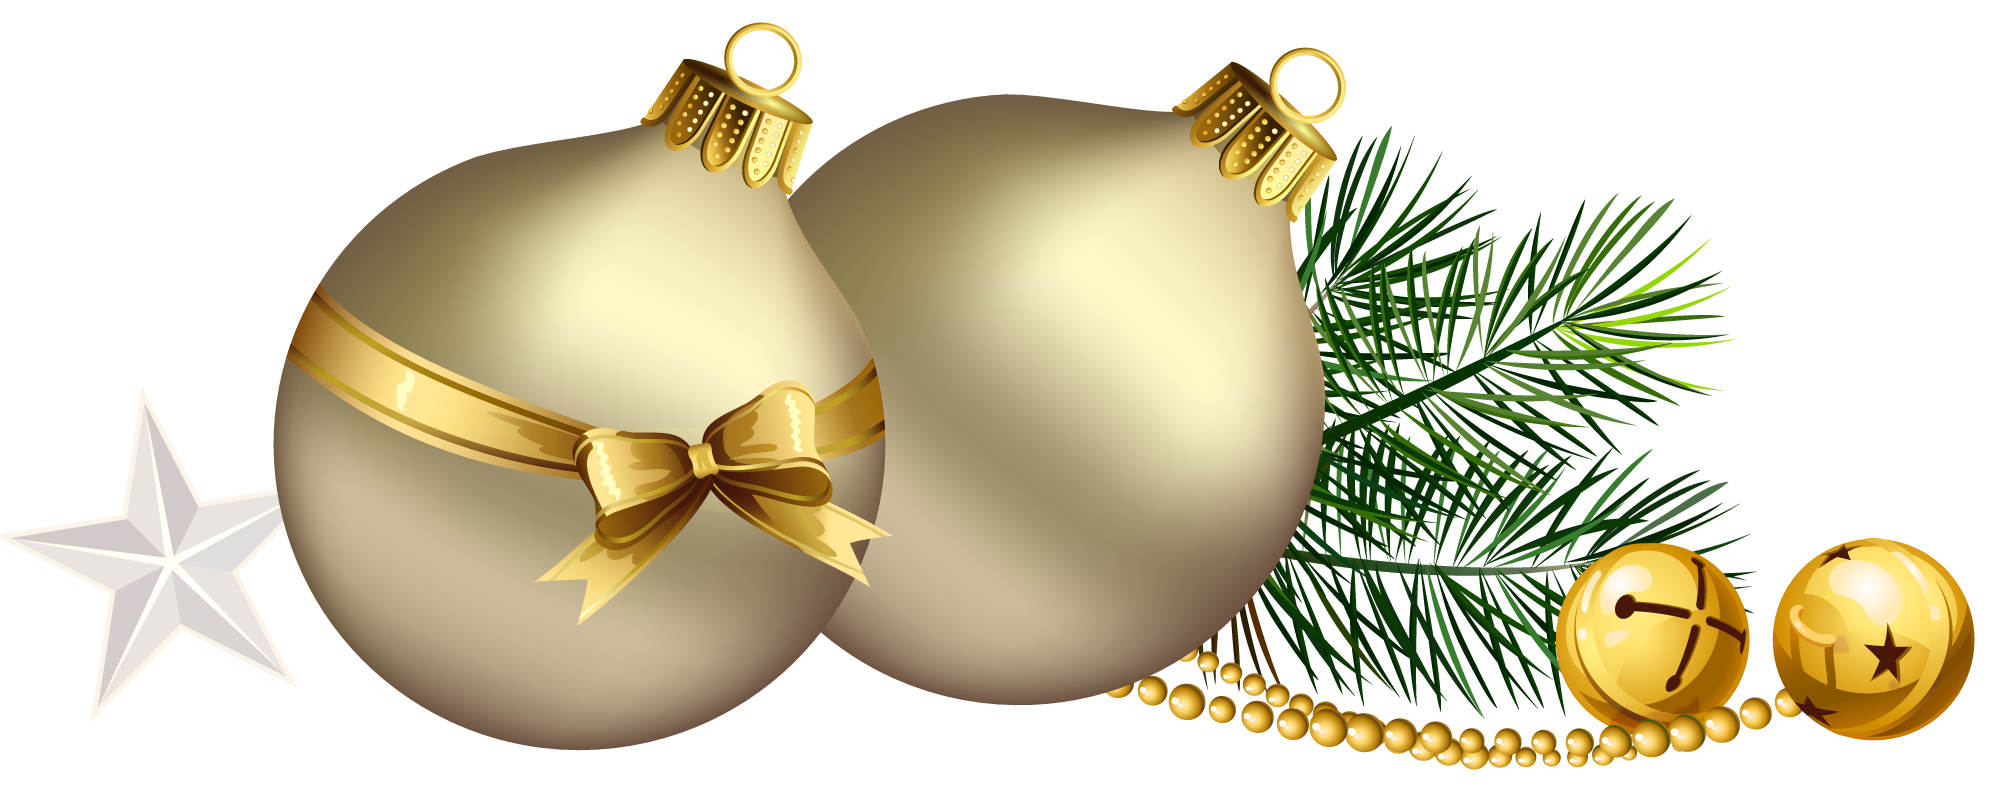 picture royalty free stock Balls with pine branch. Christmas borders free clipart